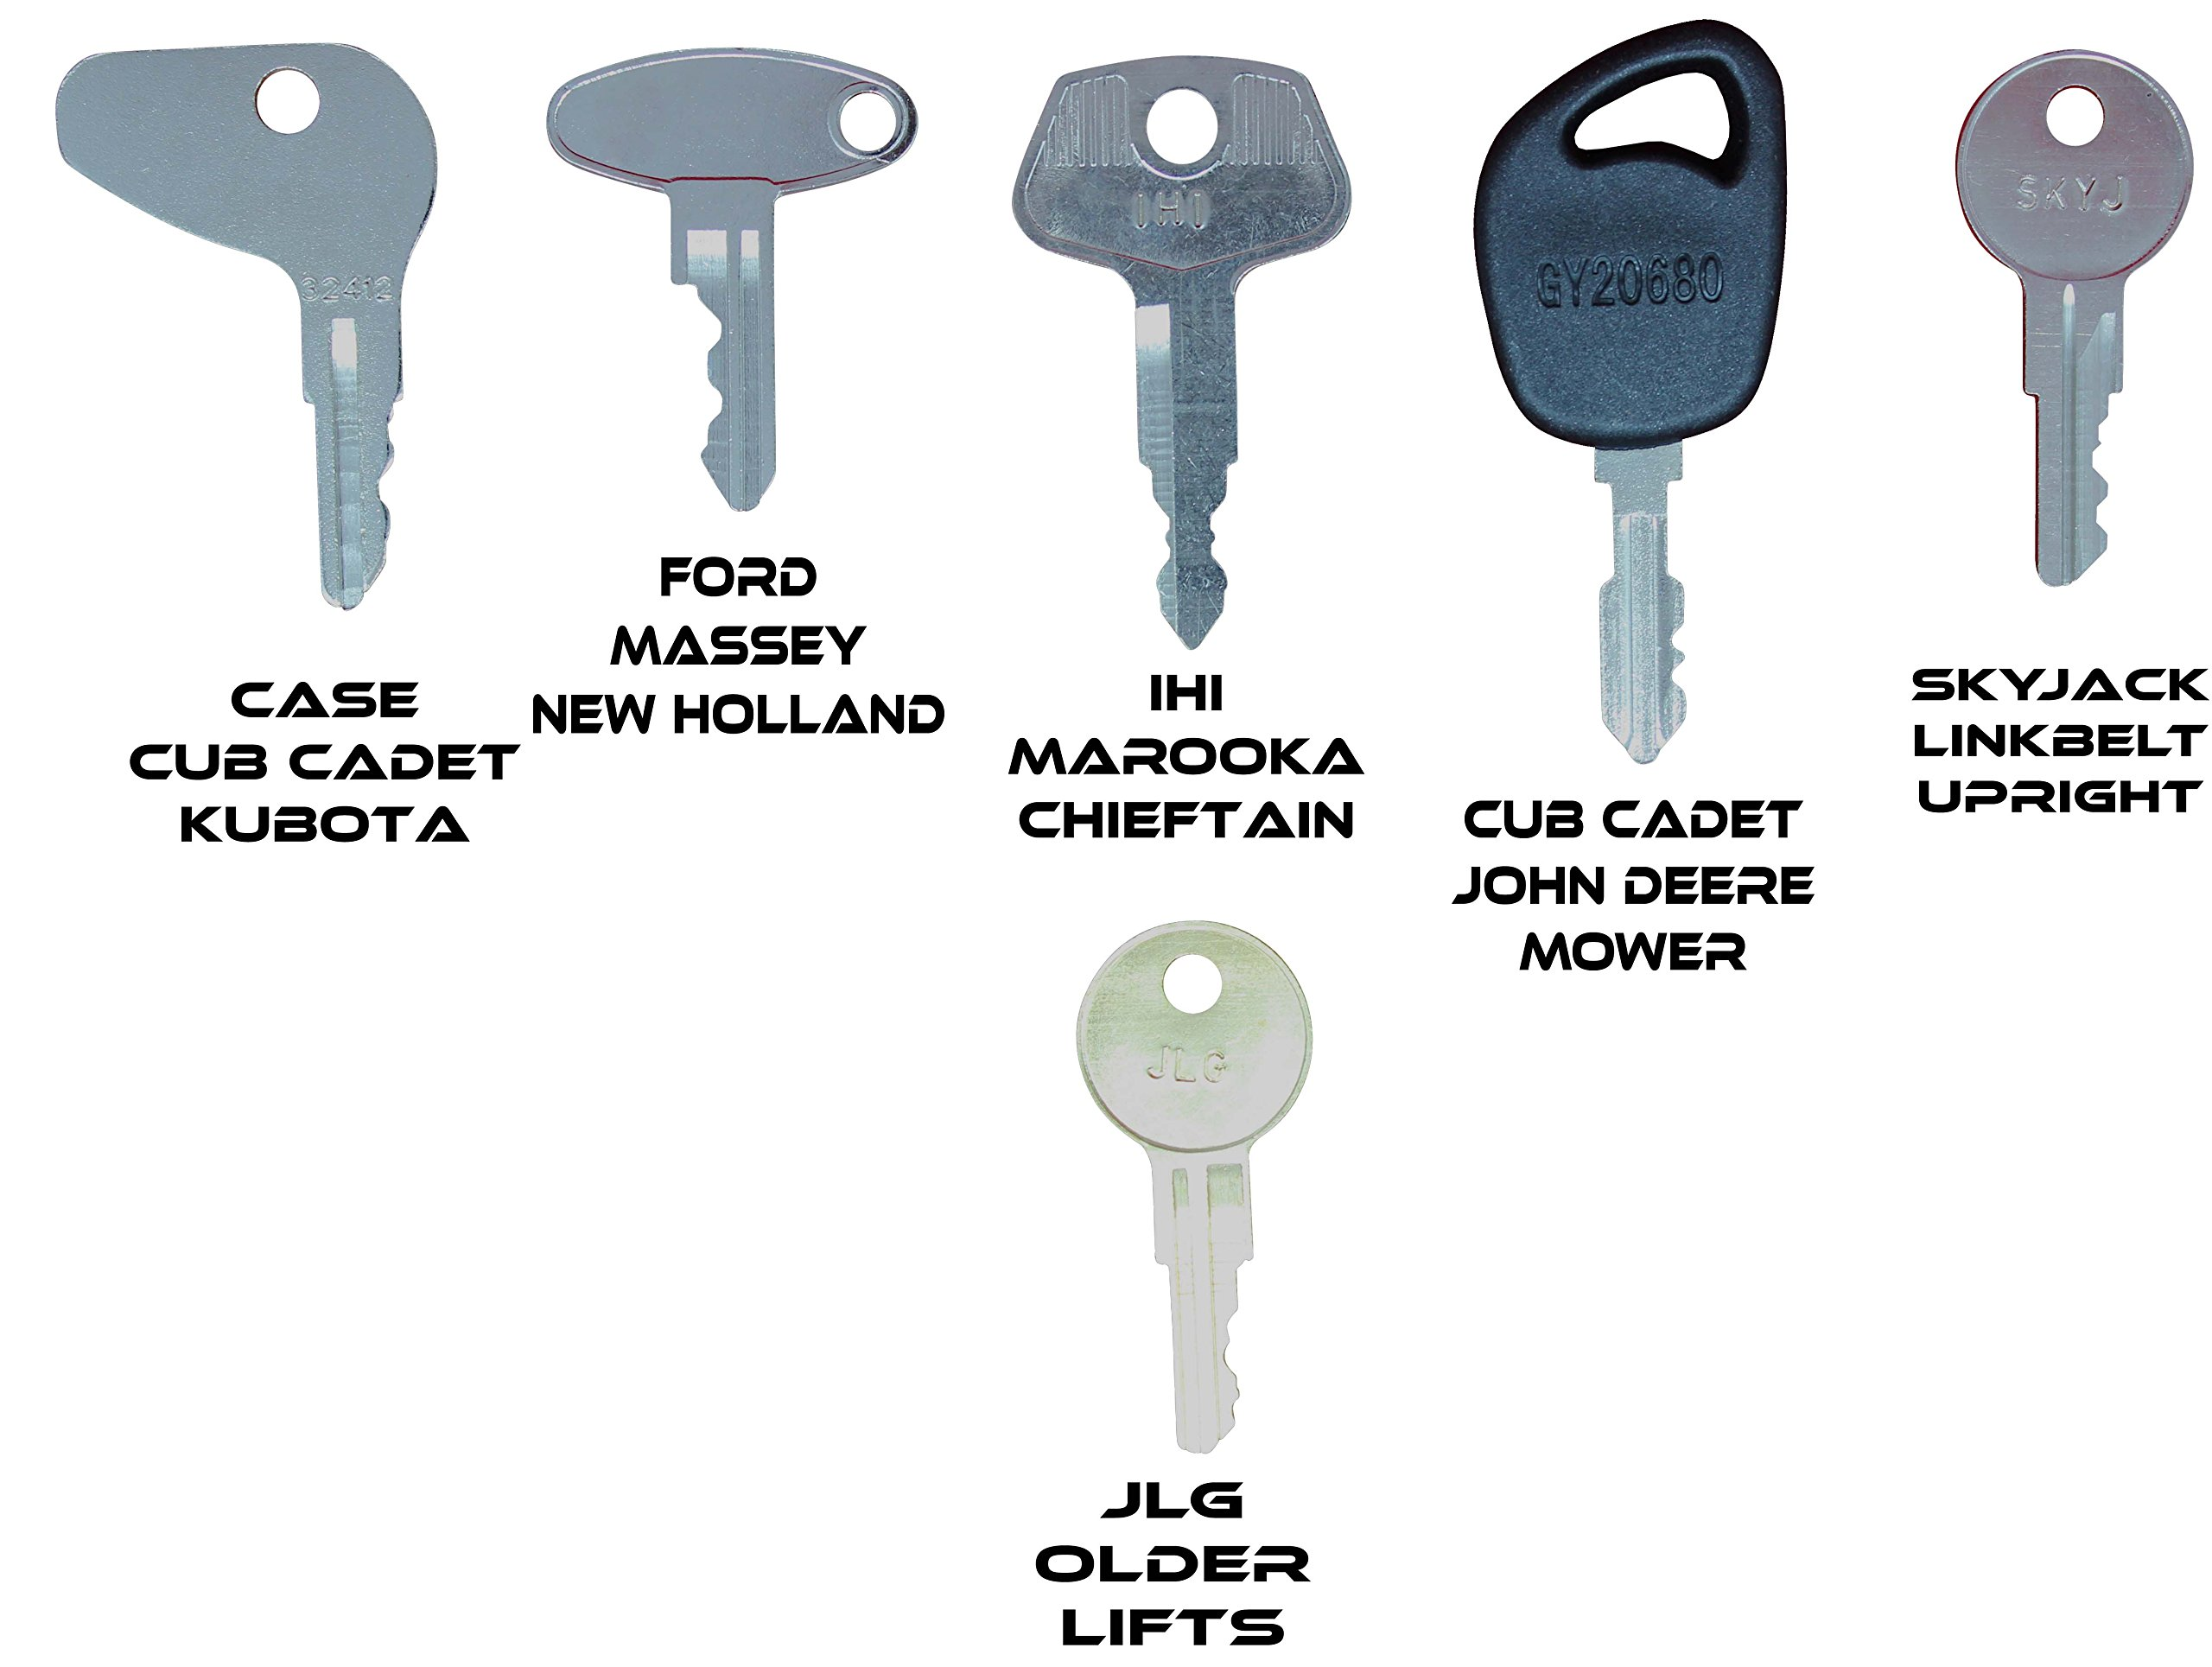 Construction Equipment Master Keys Set-Ignition Key Ring for Heavy Machines, 36 Key Set by TORNADO HEAVY EQUIPMENT PARTS (Image #5)